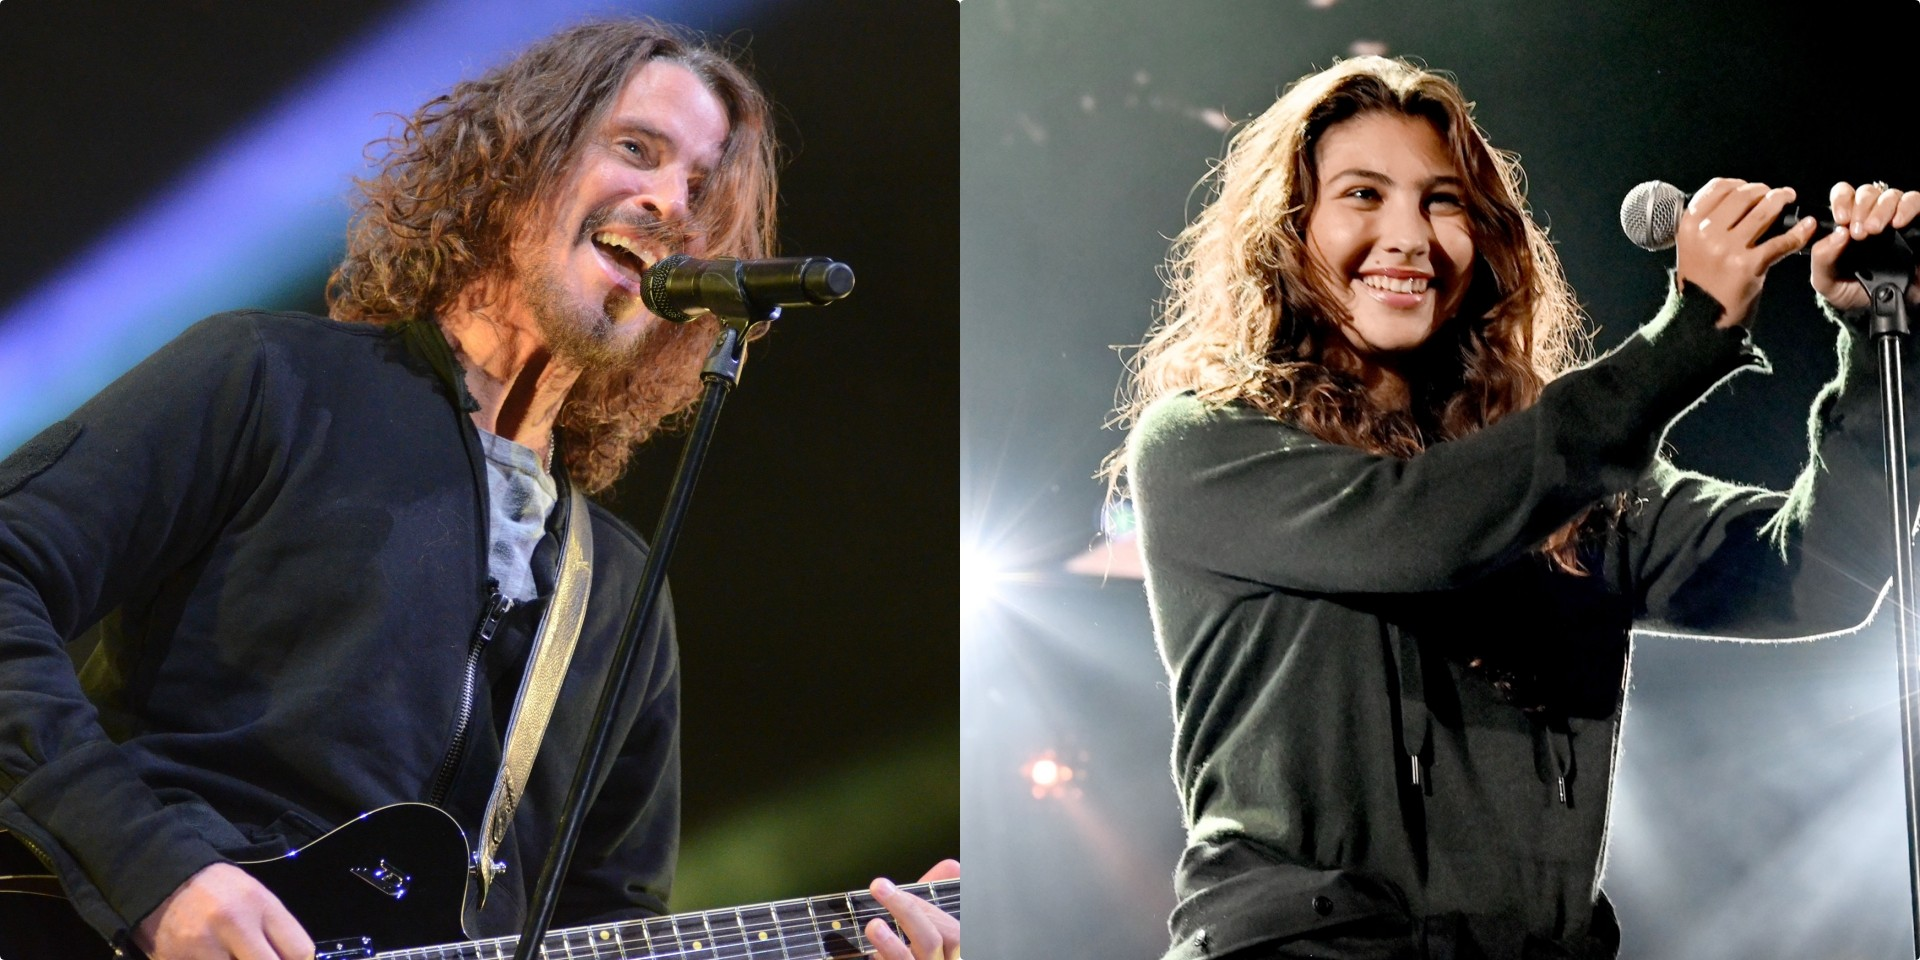 Toni Cornell releases 'Far Away Places', a new song produced by her late father Chris Cornell